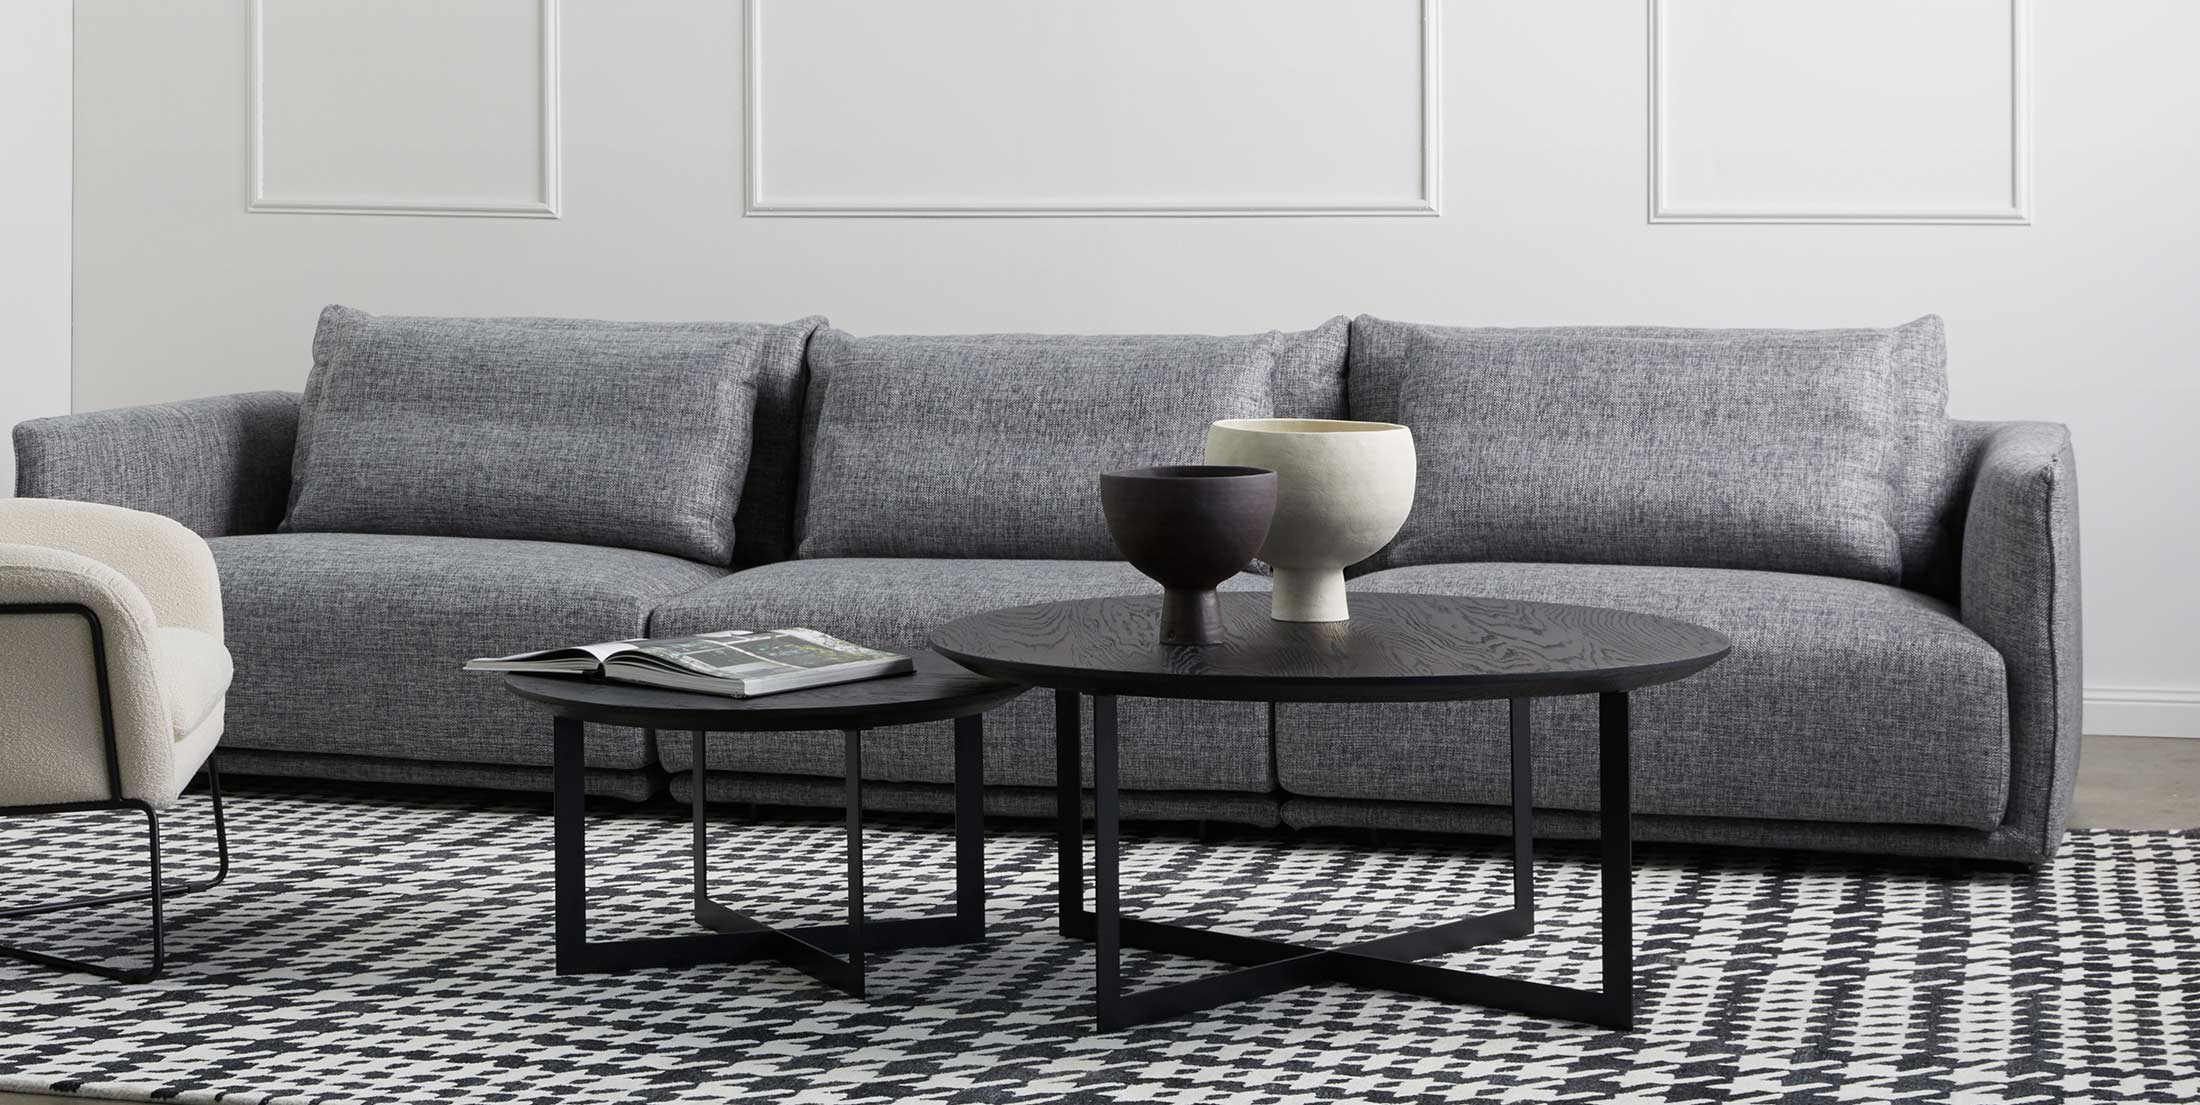 Have You Got A Trade Account With The Rug Collection